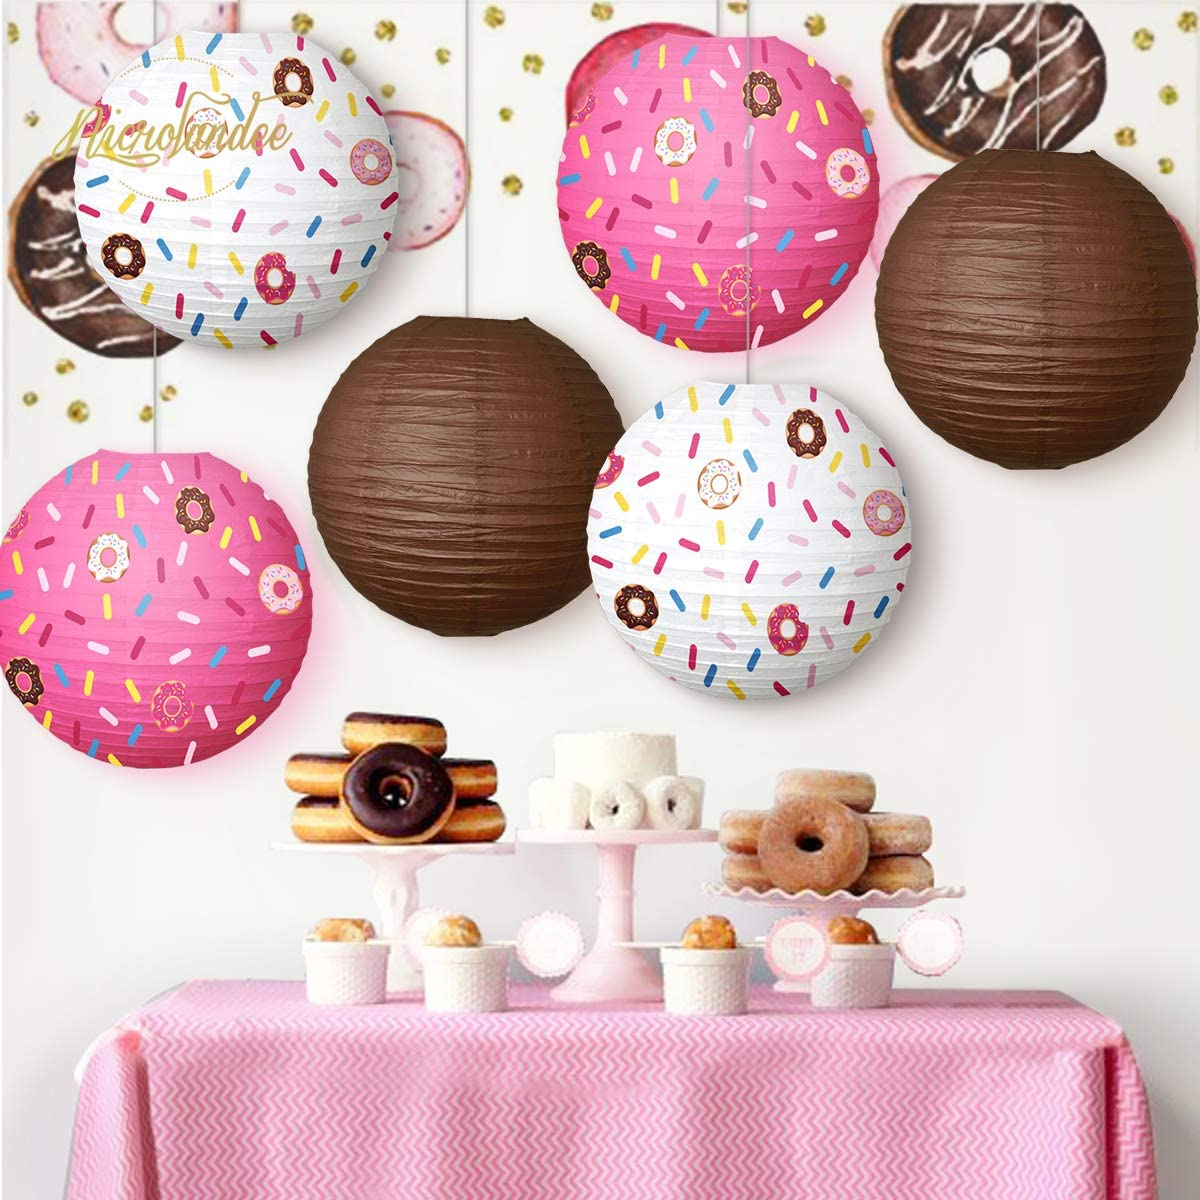 NICROLANDEE Donut Party Supplies/12inch Paper/Lantern Donuts Grow Up/Birthday Party For/Baby/Shower Kids/Party Decor Ice Cream Party Decorations(6PCS)